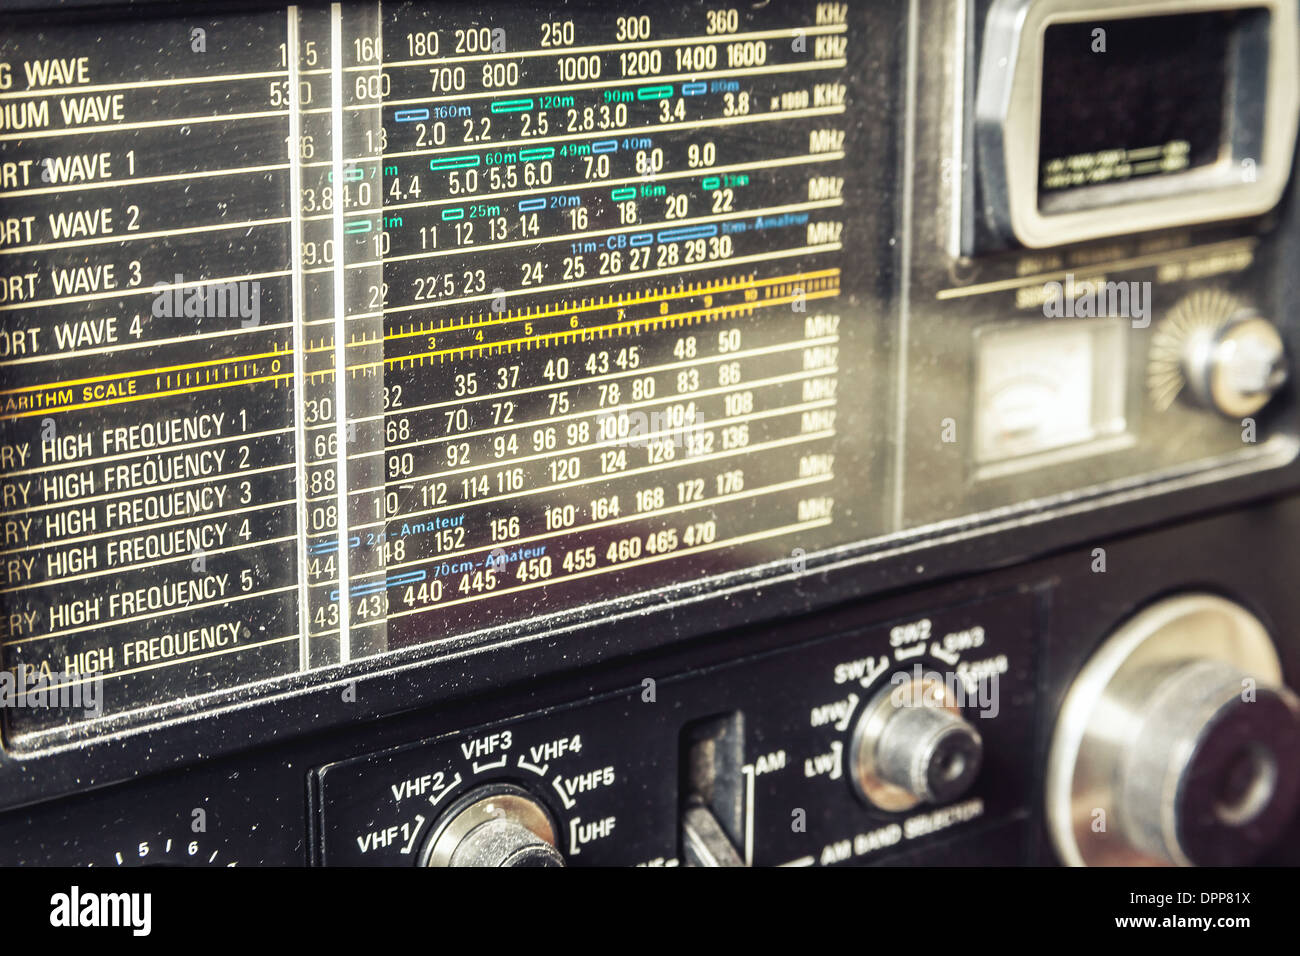 Details of an old am radio receiver. - Stock Image